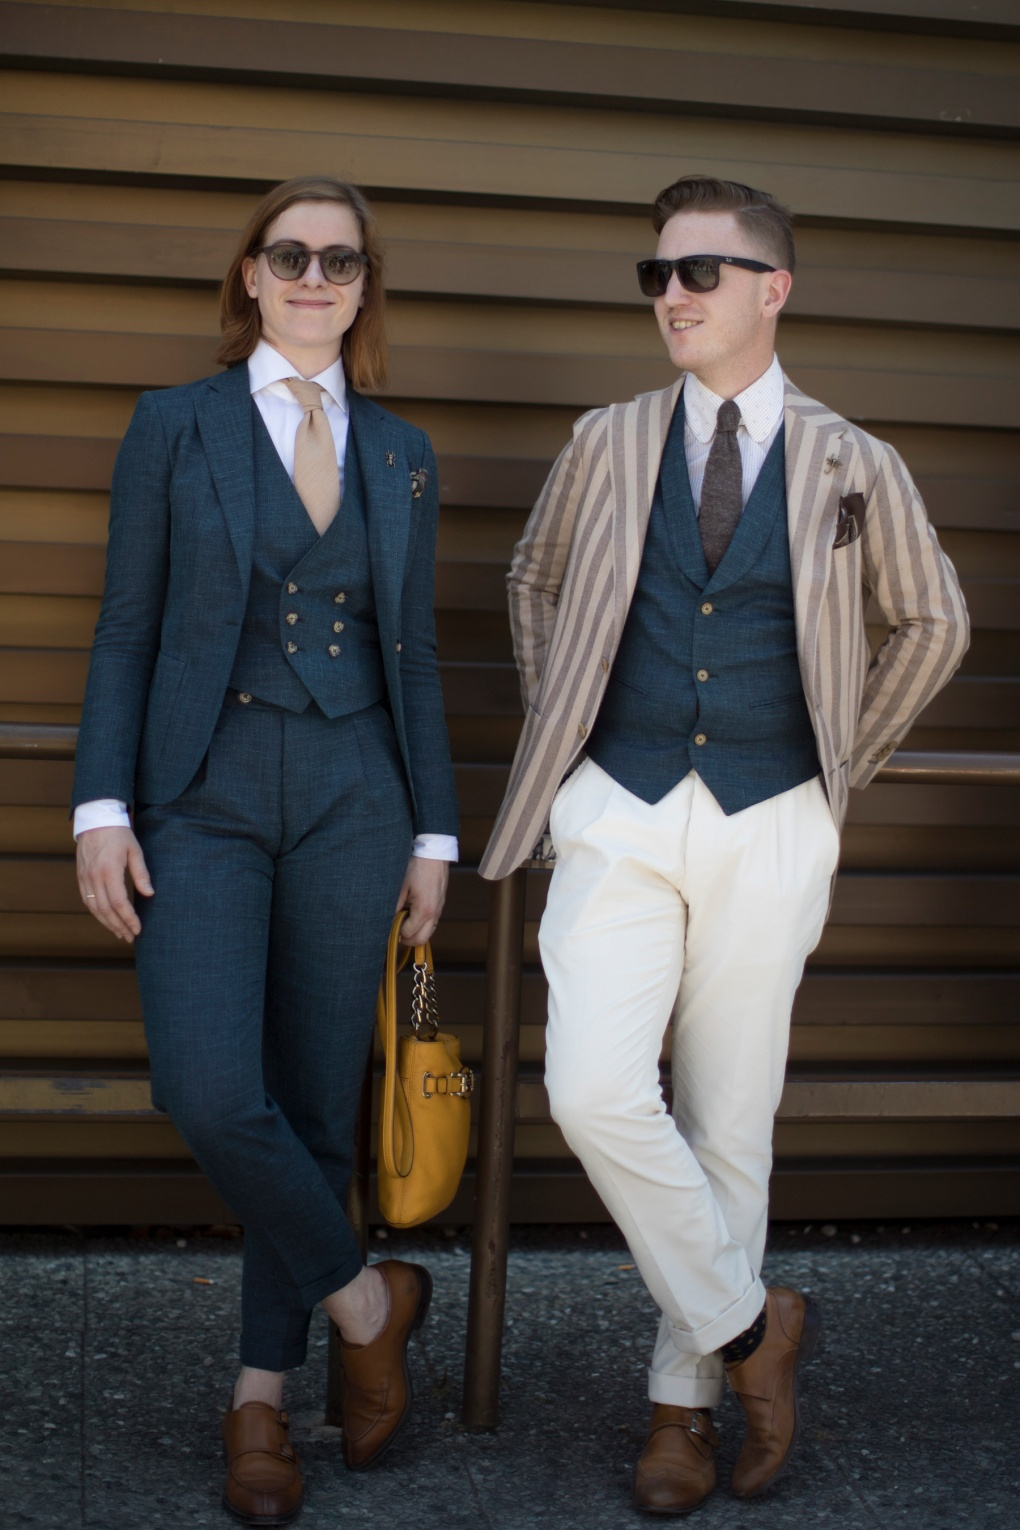 pitti-street-style-92-june-2018-gentsome-magazine2